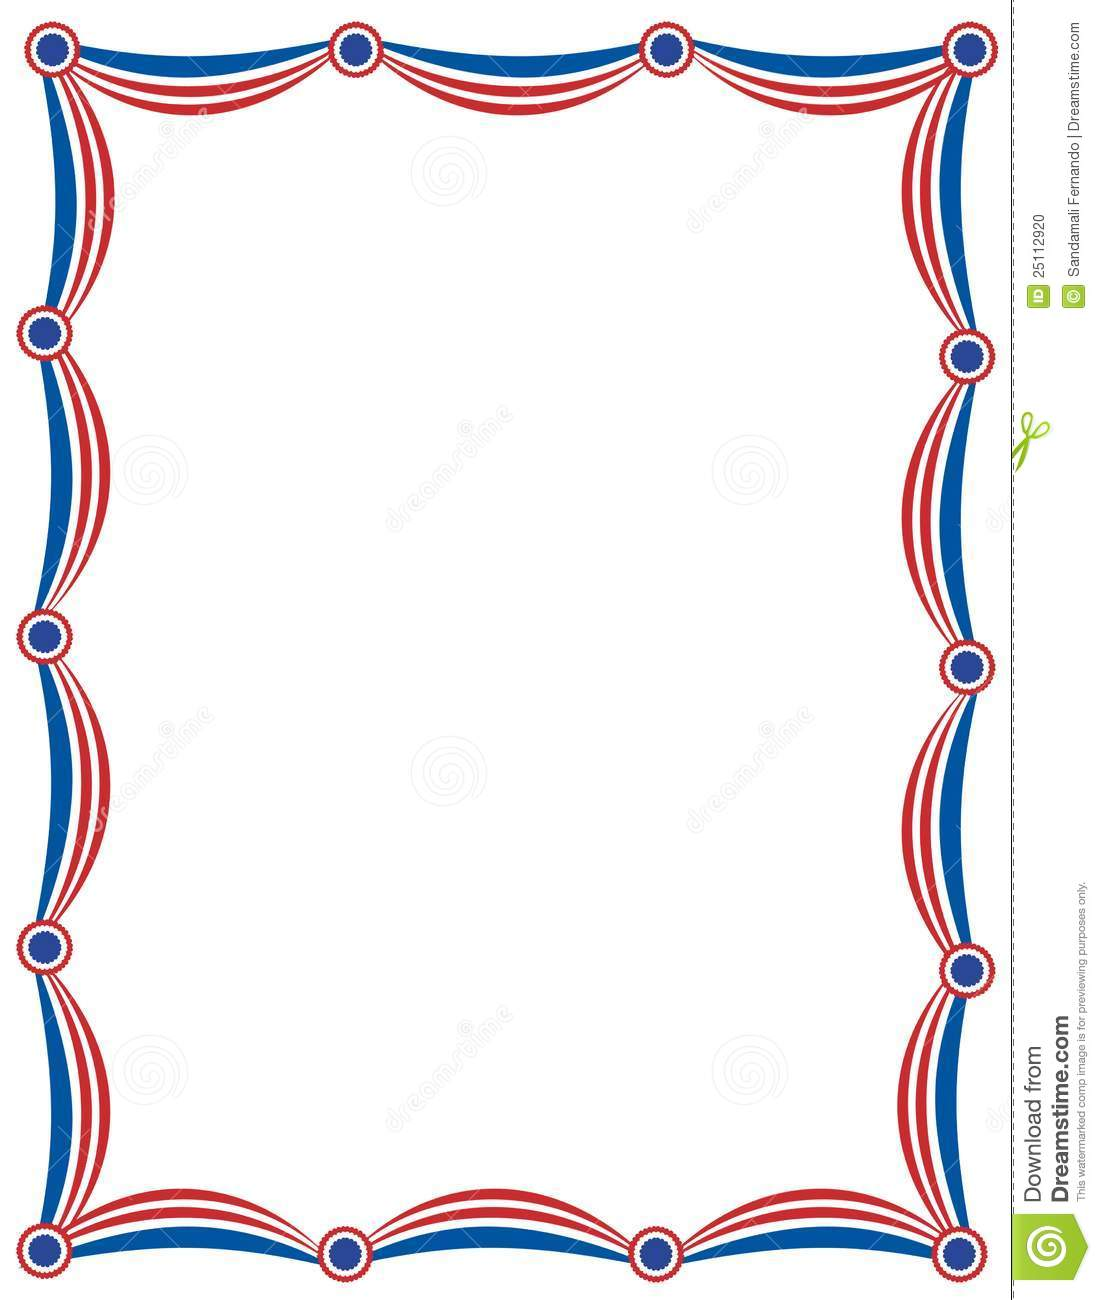 Patriotic clipart border. Free download best